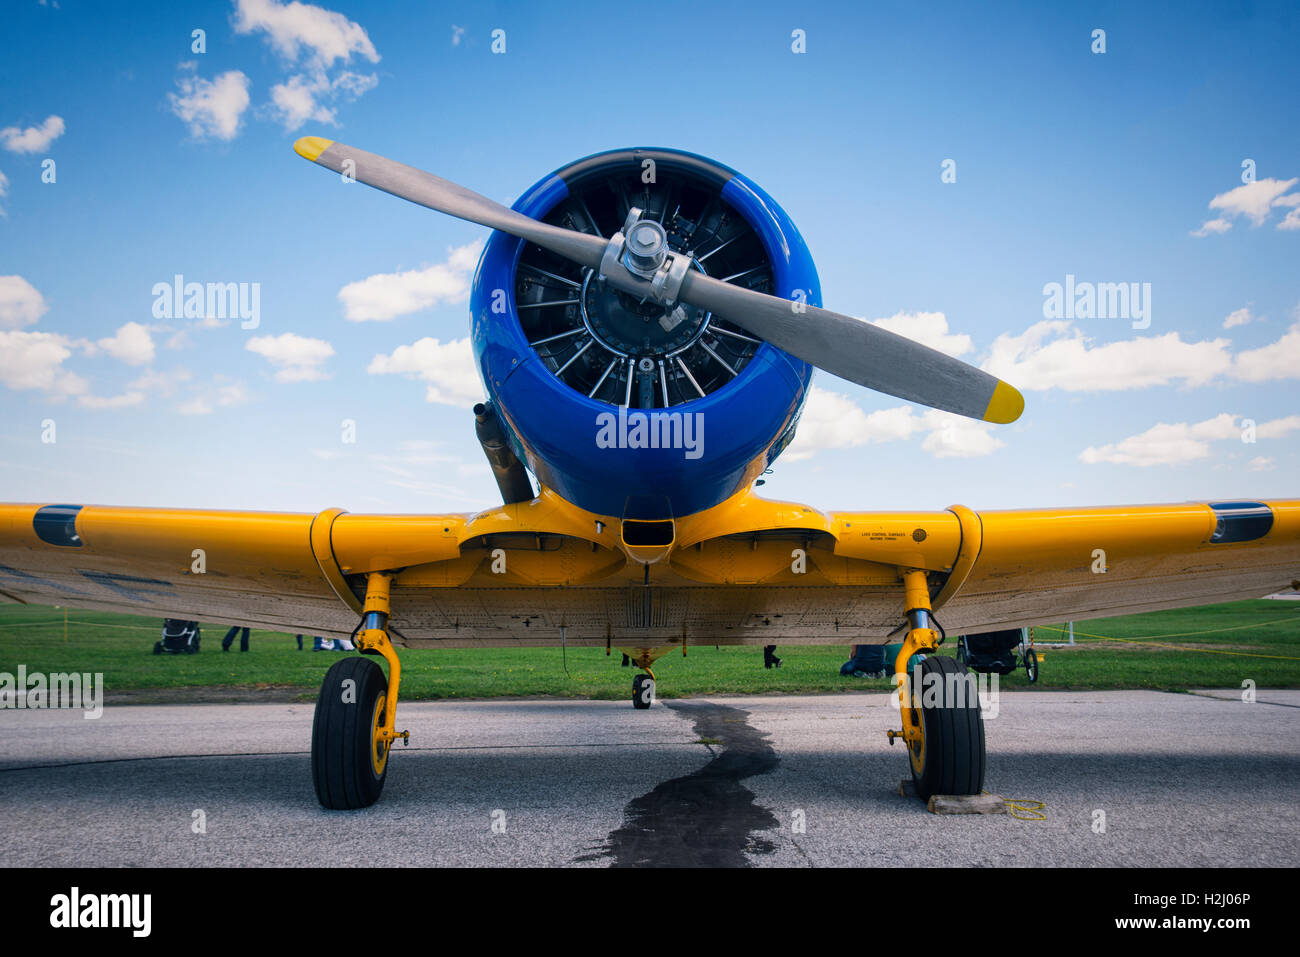 Frontal view of engine and propeller of old vintage airplane - Stock Image